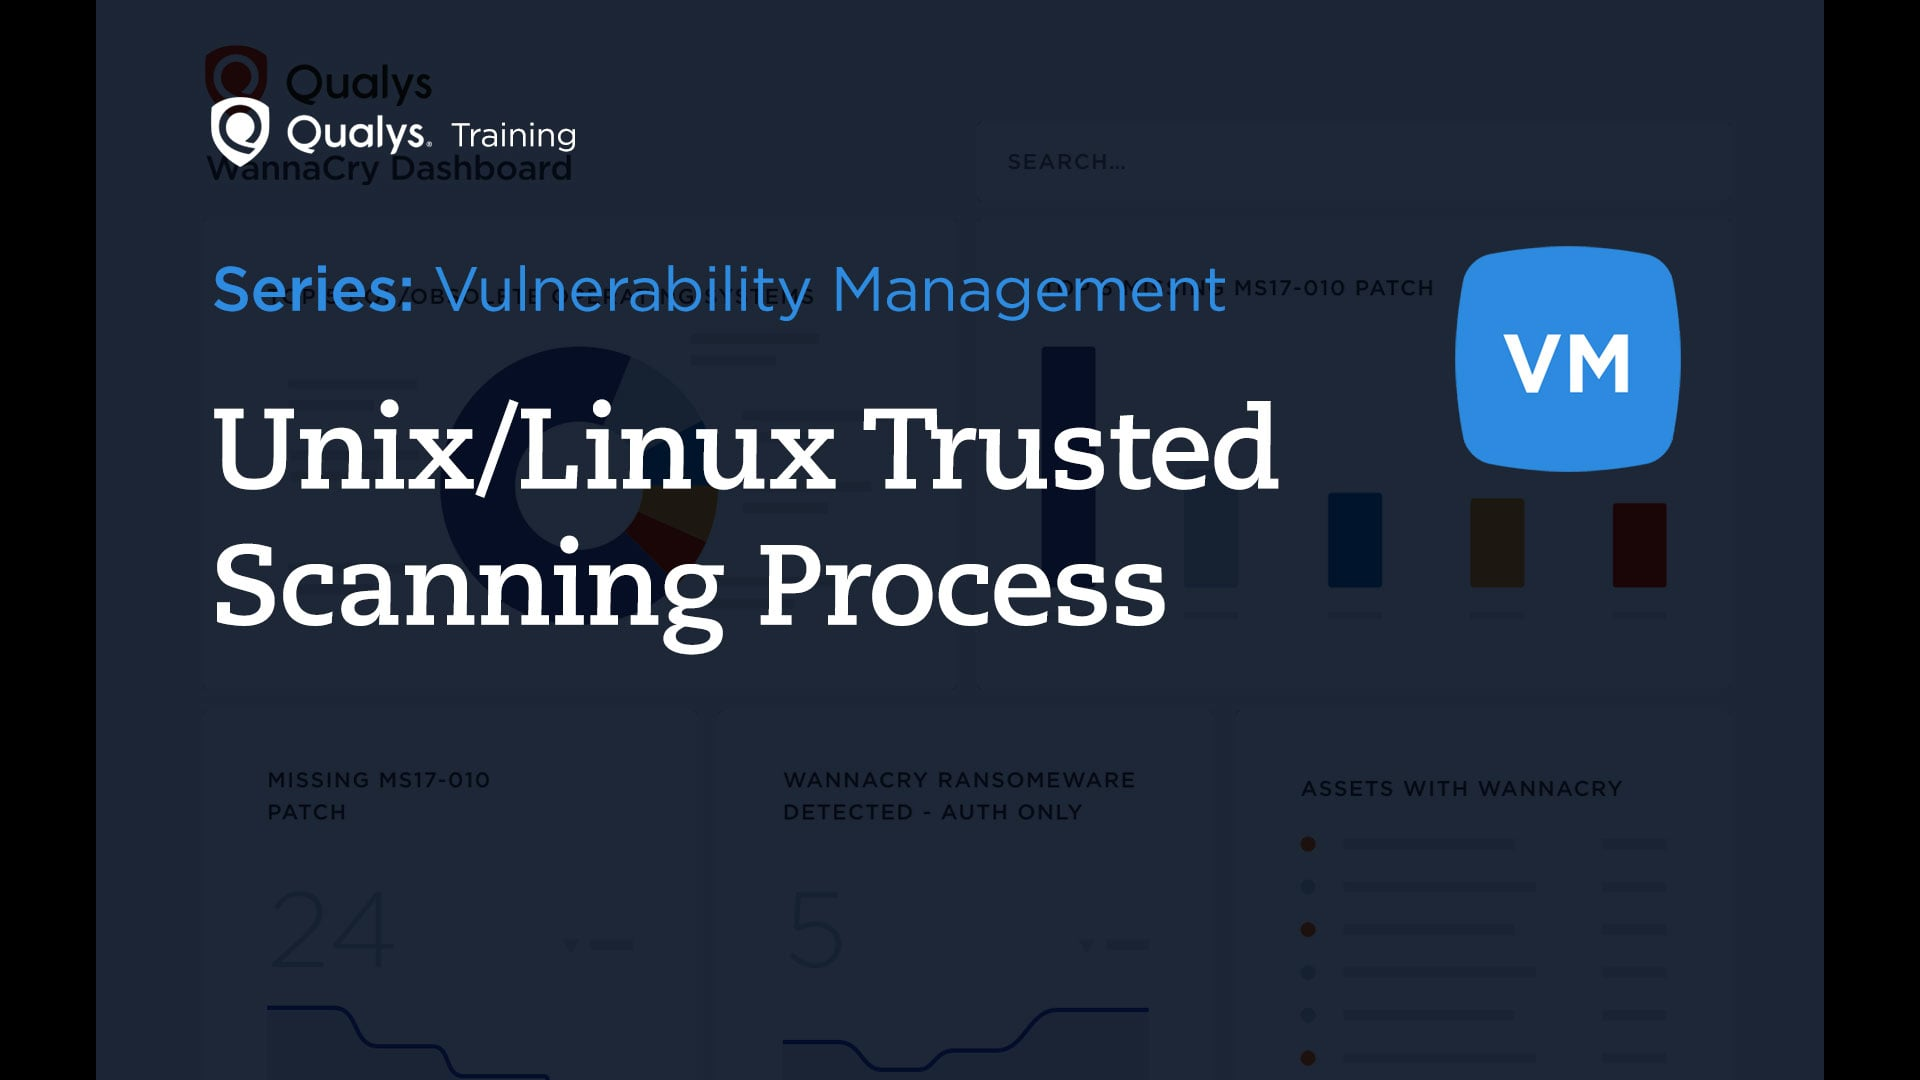 Unix/Linux Trusted Scanning Process